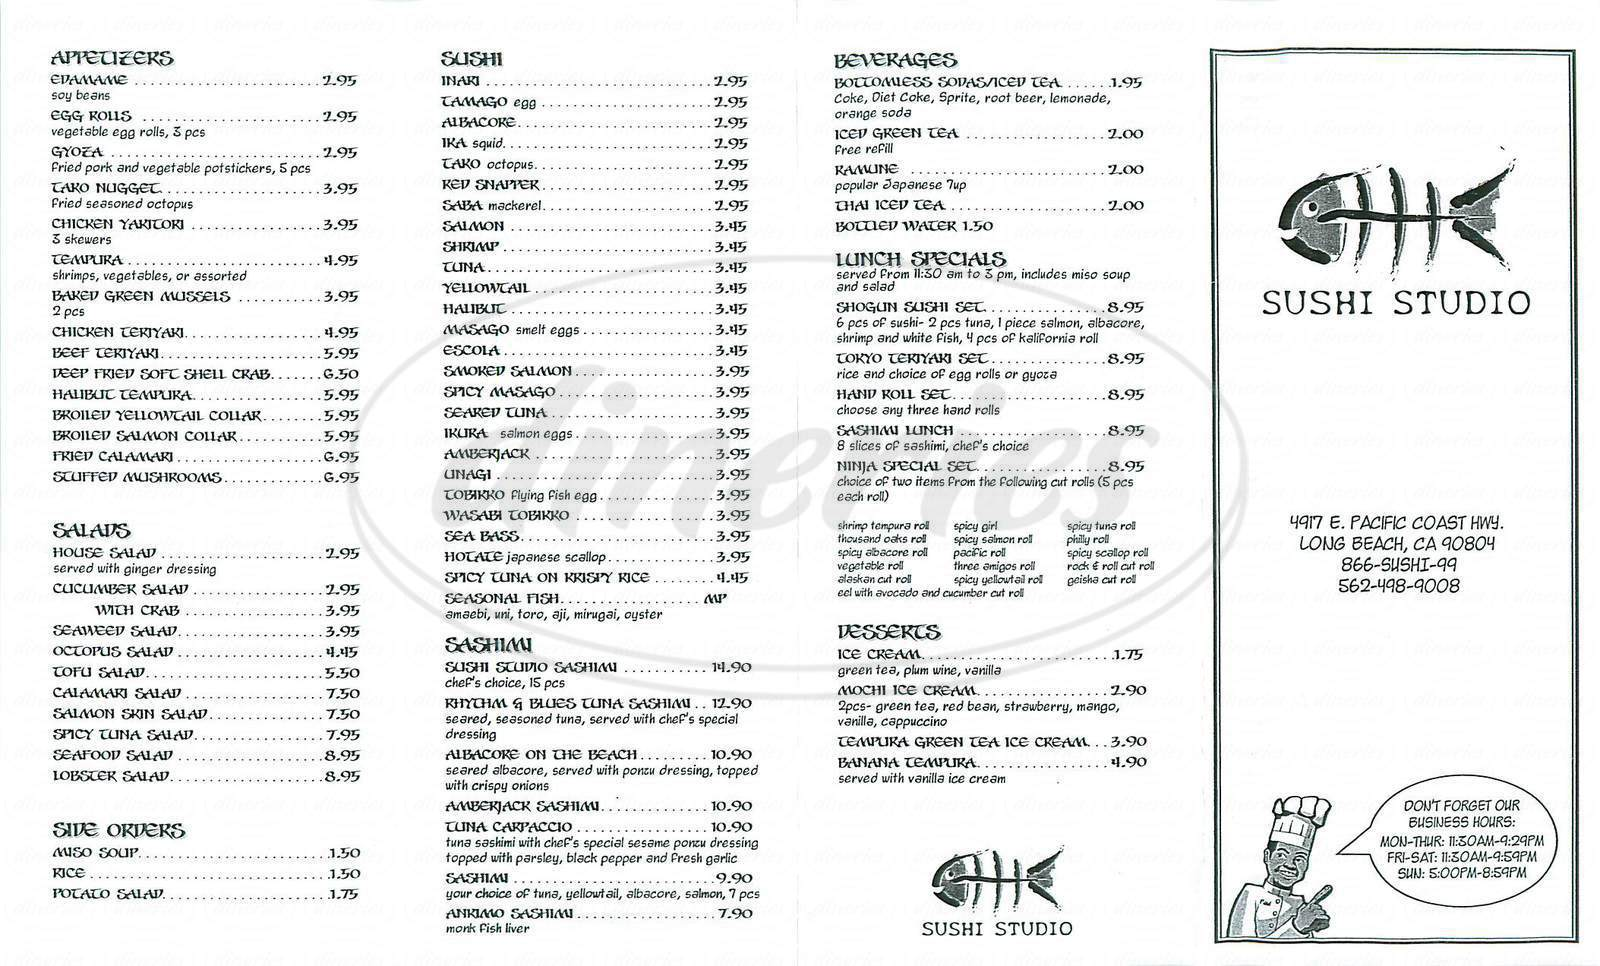 menu for Sushi Studio